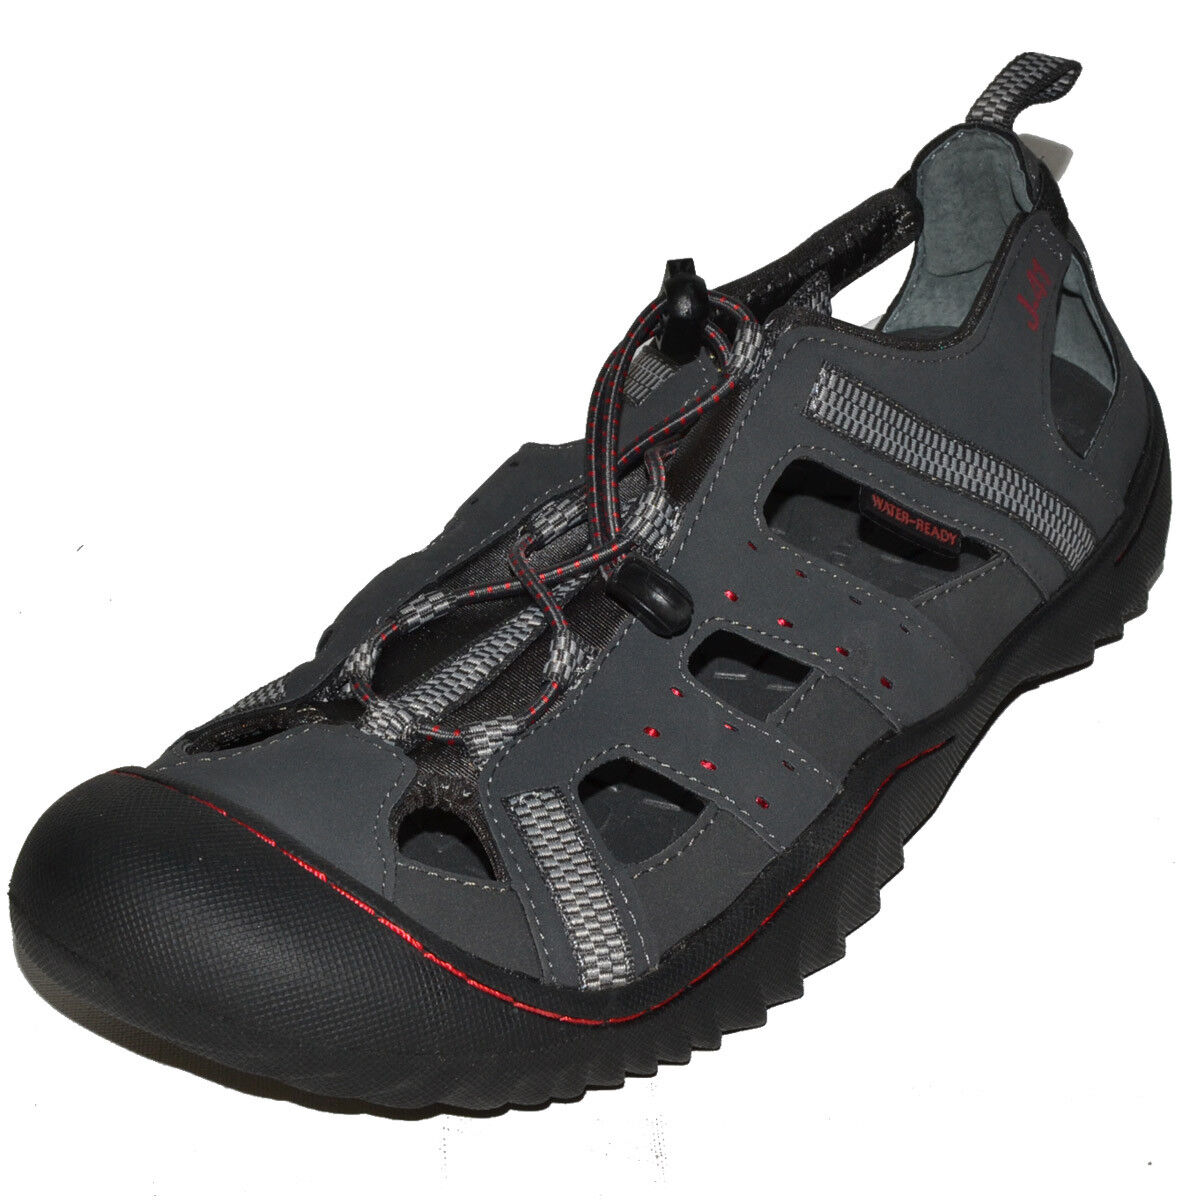 Jeep Trail Rated Outdoor shoes Groove II Grey Sandals